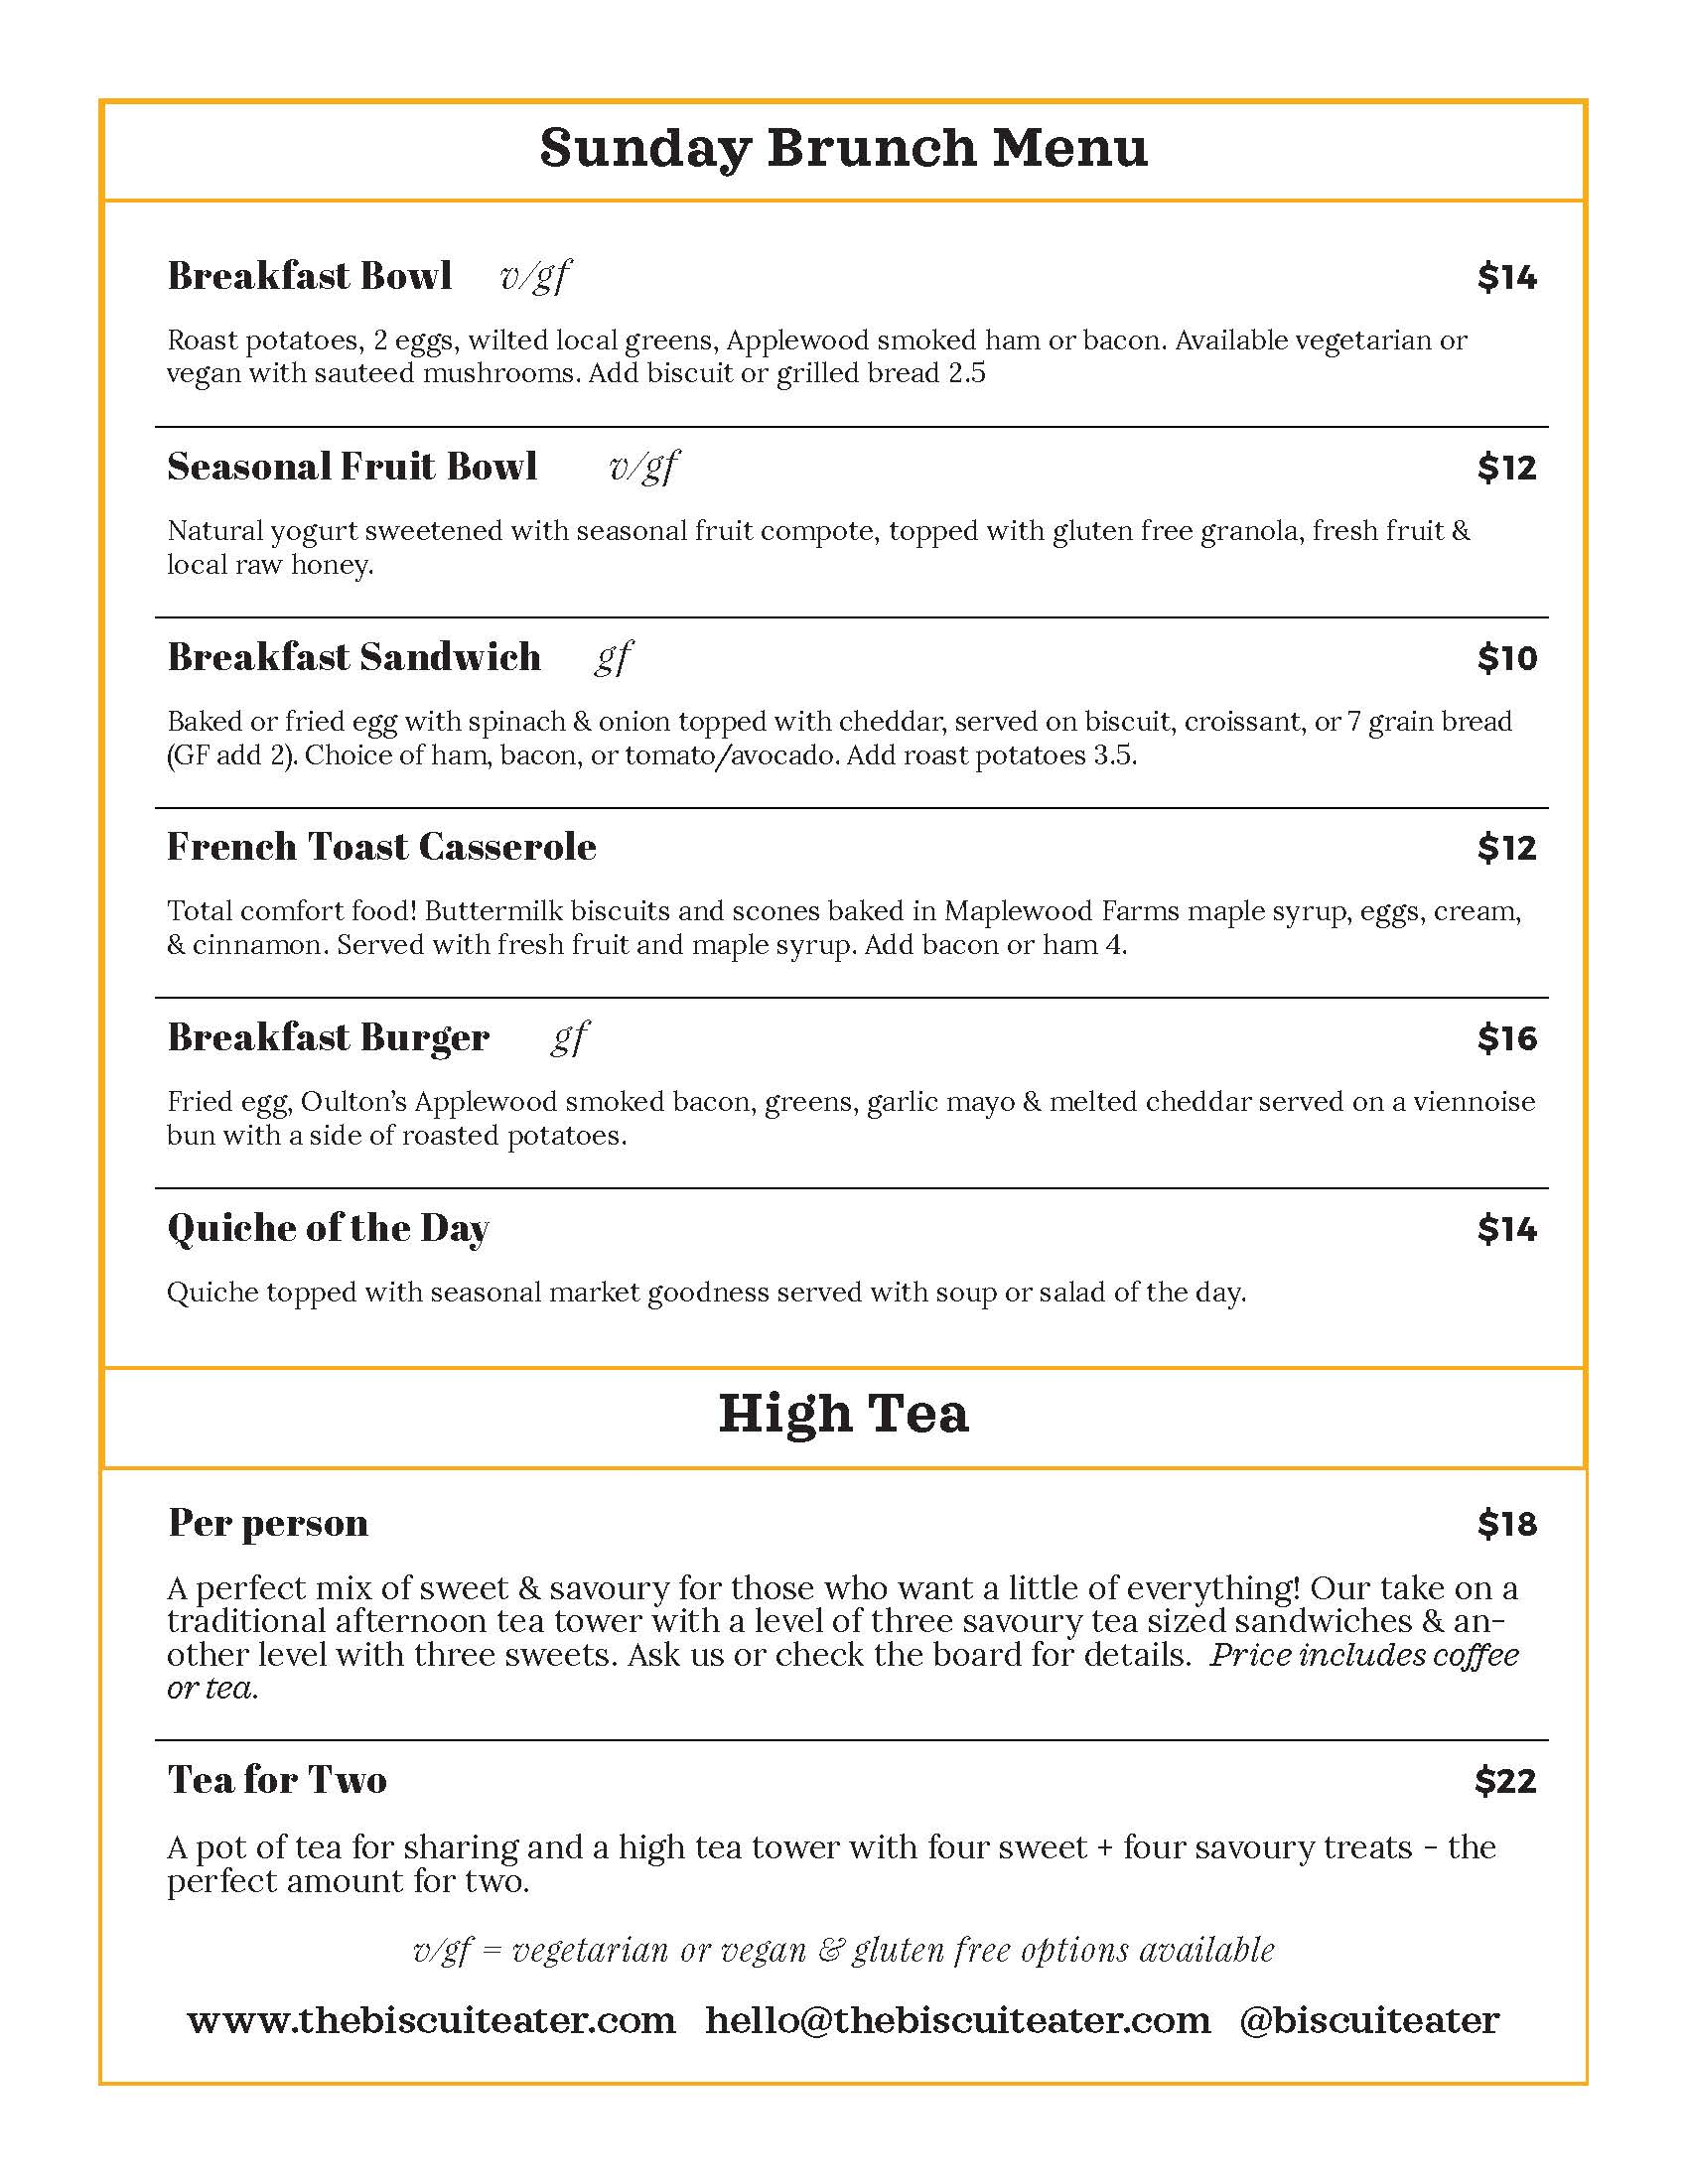 The Biscuit Eater Cafe, Mahone Bay, Nova Scotia, Sunday Brunch Menu